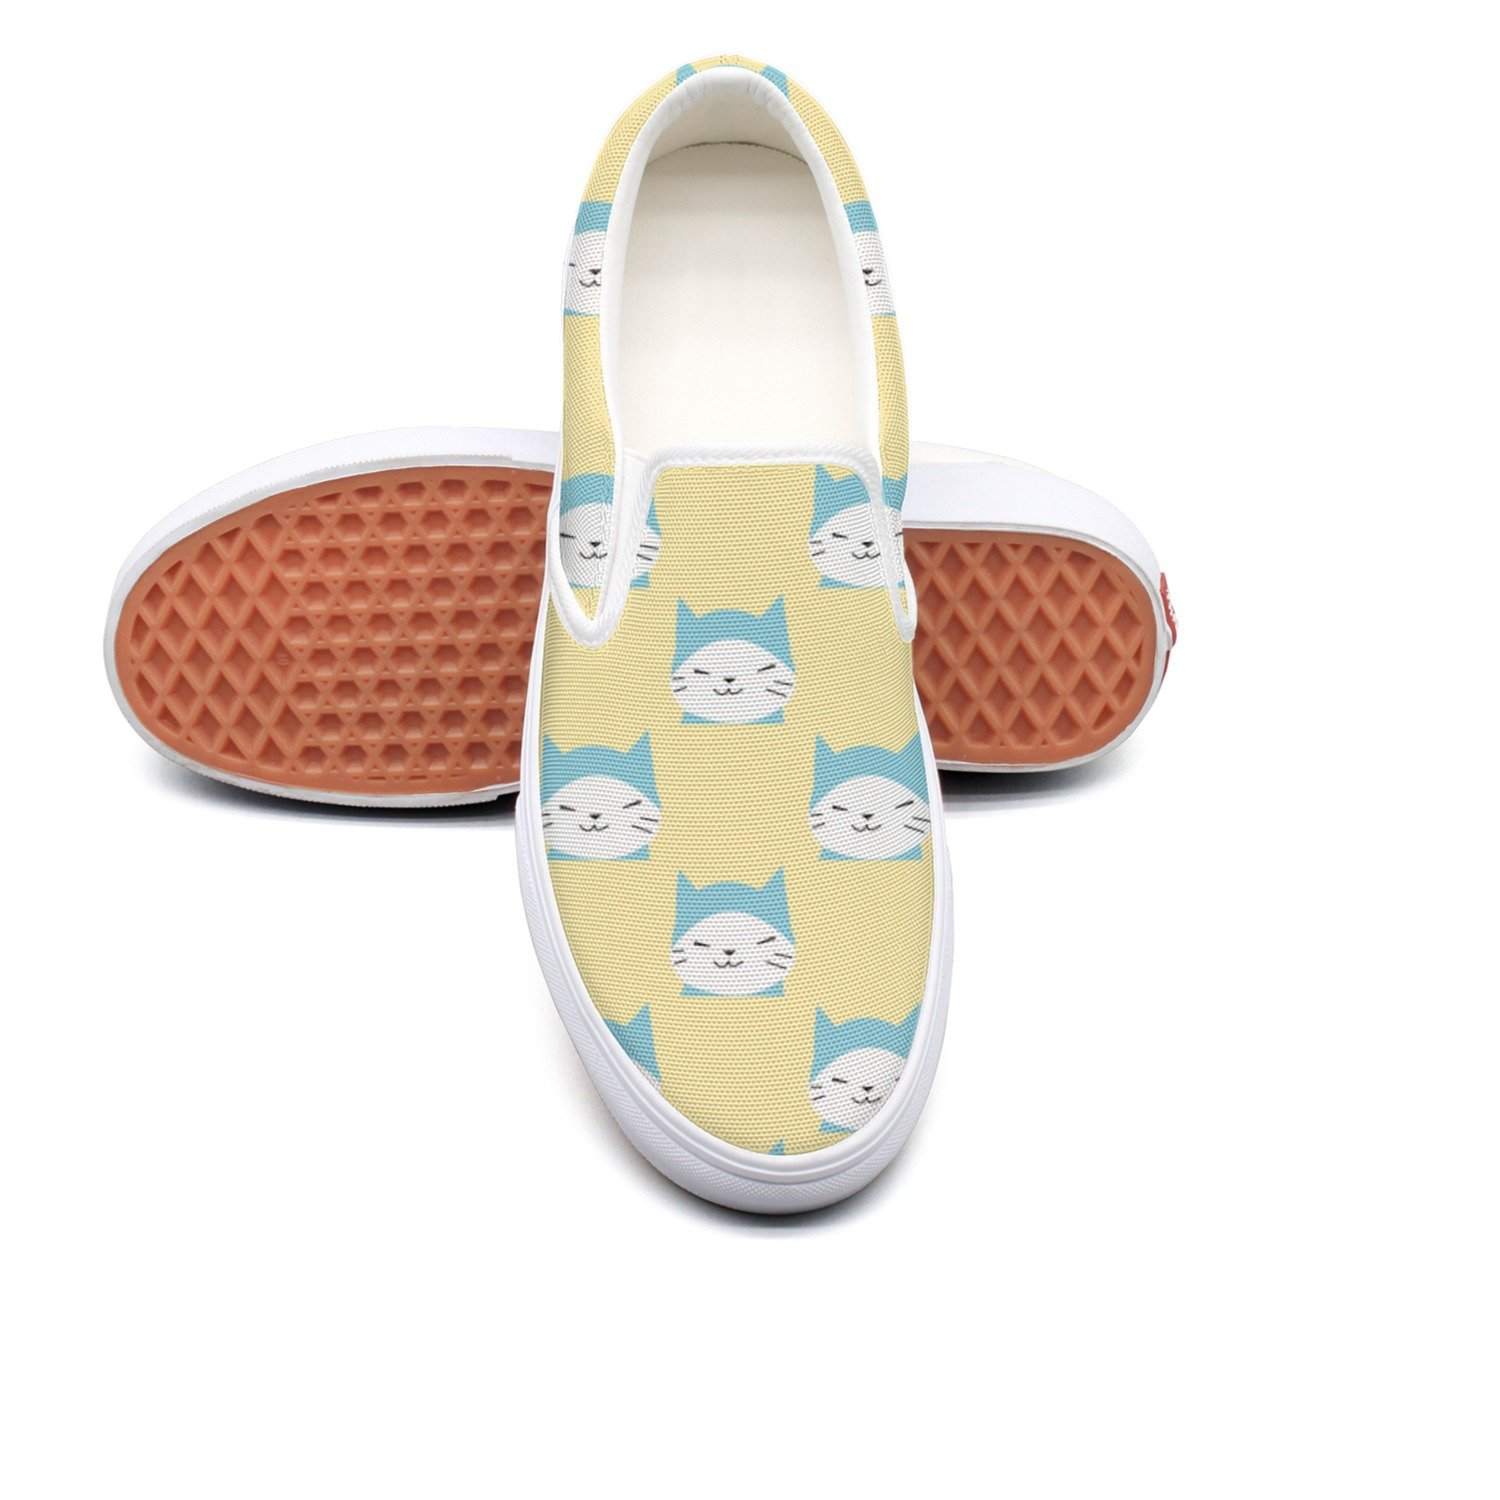 VCERTHDF Cartoon Kitty Cat Meow Print Slip-On Shoe Men White